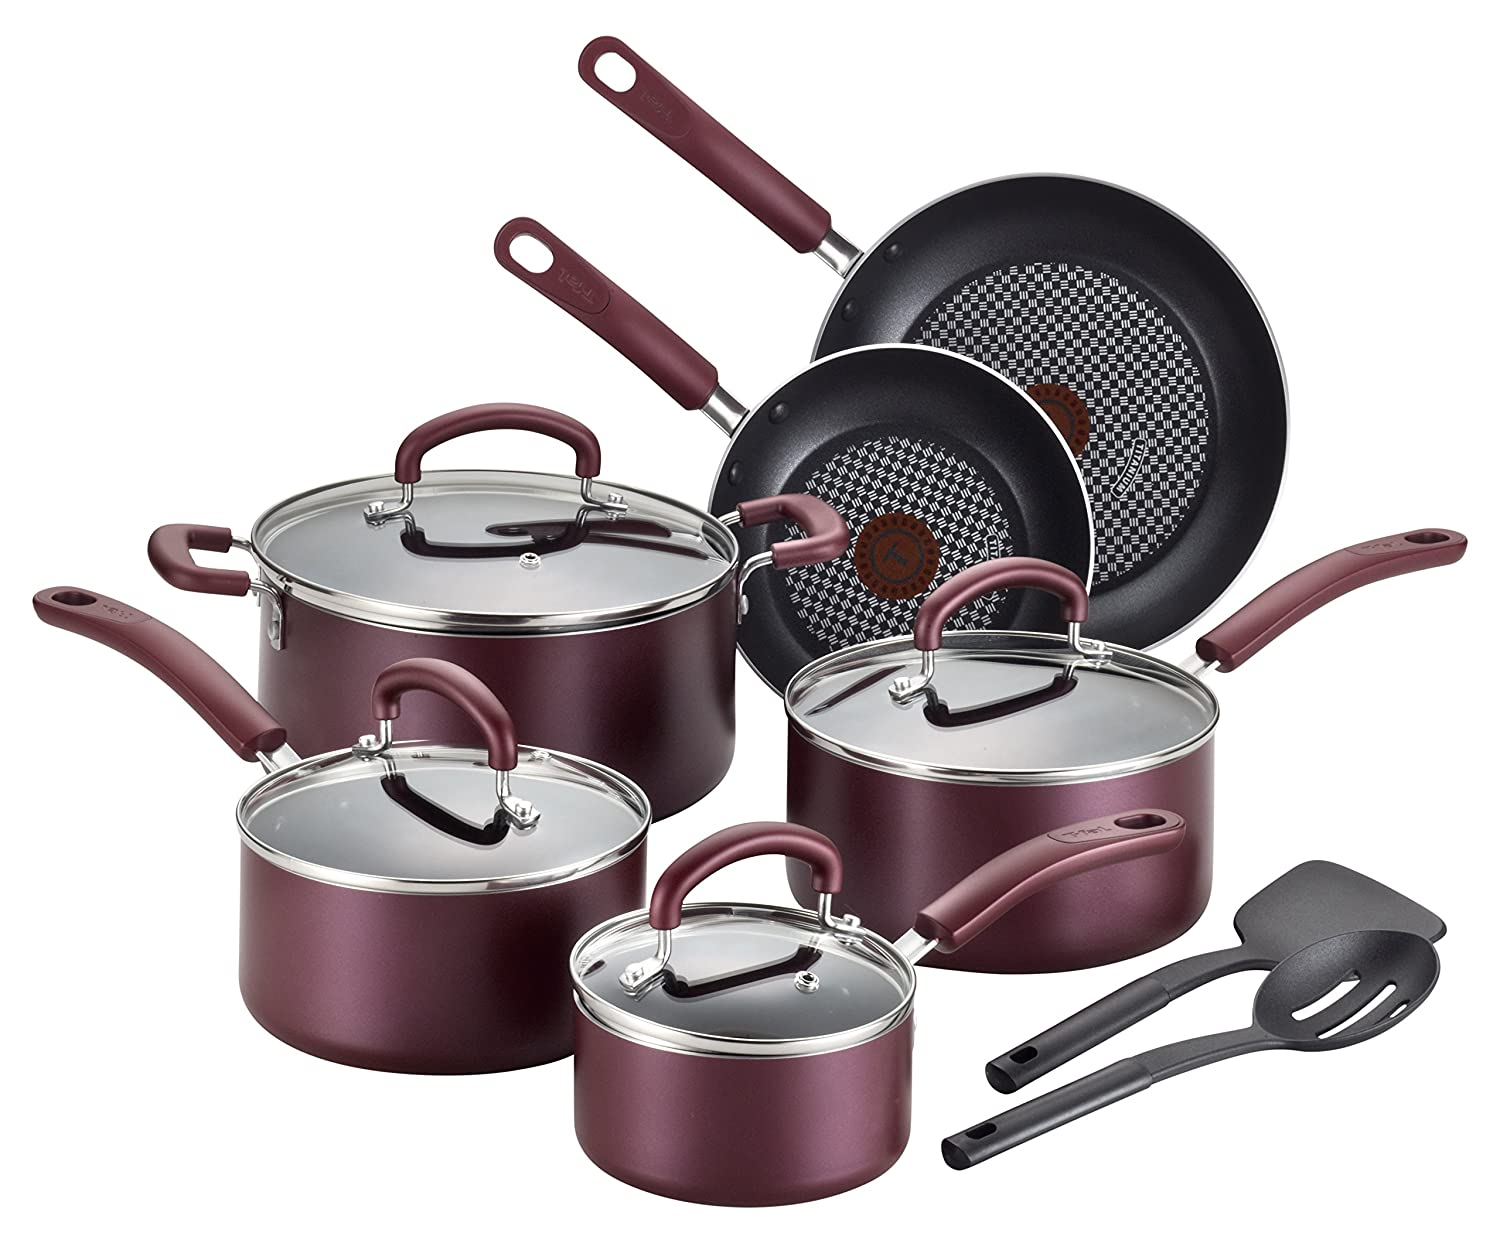 T-fal B130SC Color Luxe Hard Titanium Nonstick Thermo-Spot Dishwasher Safe PFOA Free Cookware Set, 12-Piece, Red 2100094331